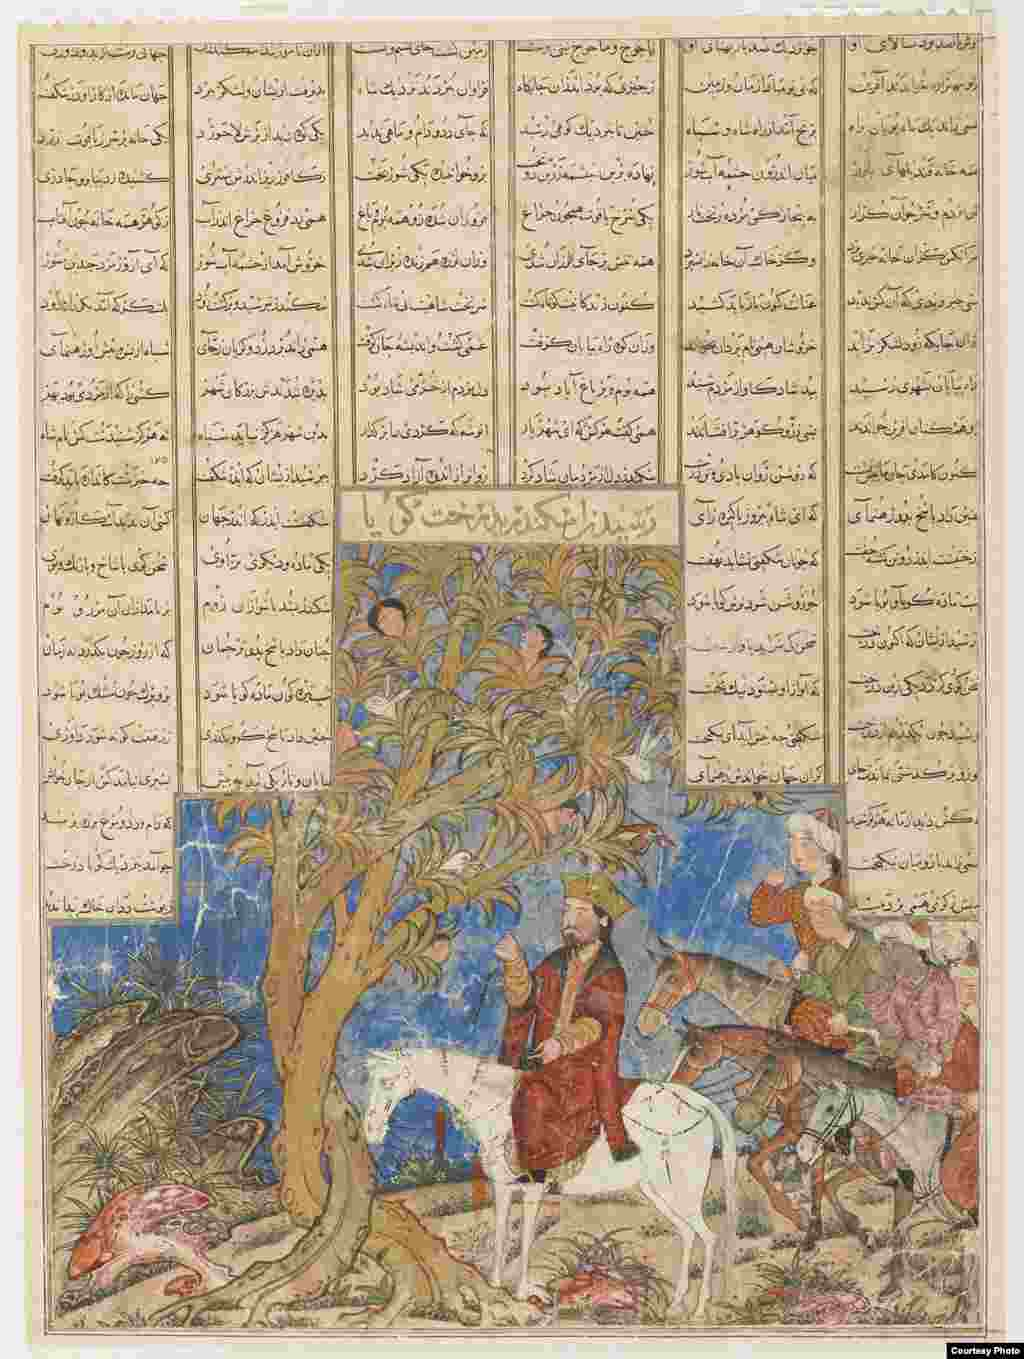 "A mixture of myth and history, the epic poem records the story of Persia from the beginning of time up until the 7th-century Arab conquest in more than 100,000 rhymed lines. ""Iskandar (Alexander the Great) At The Talking Tree,"" Tabriz, Iran, circa 1330-1336, from ""The Shahnameh"" (Book of Kings) by Firdawsi Photos courtesy of the Smithsonian Institute, Washington, D.C."